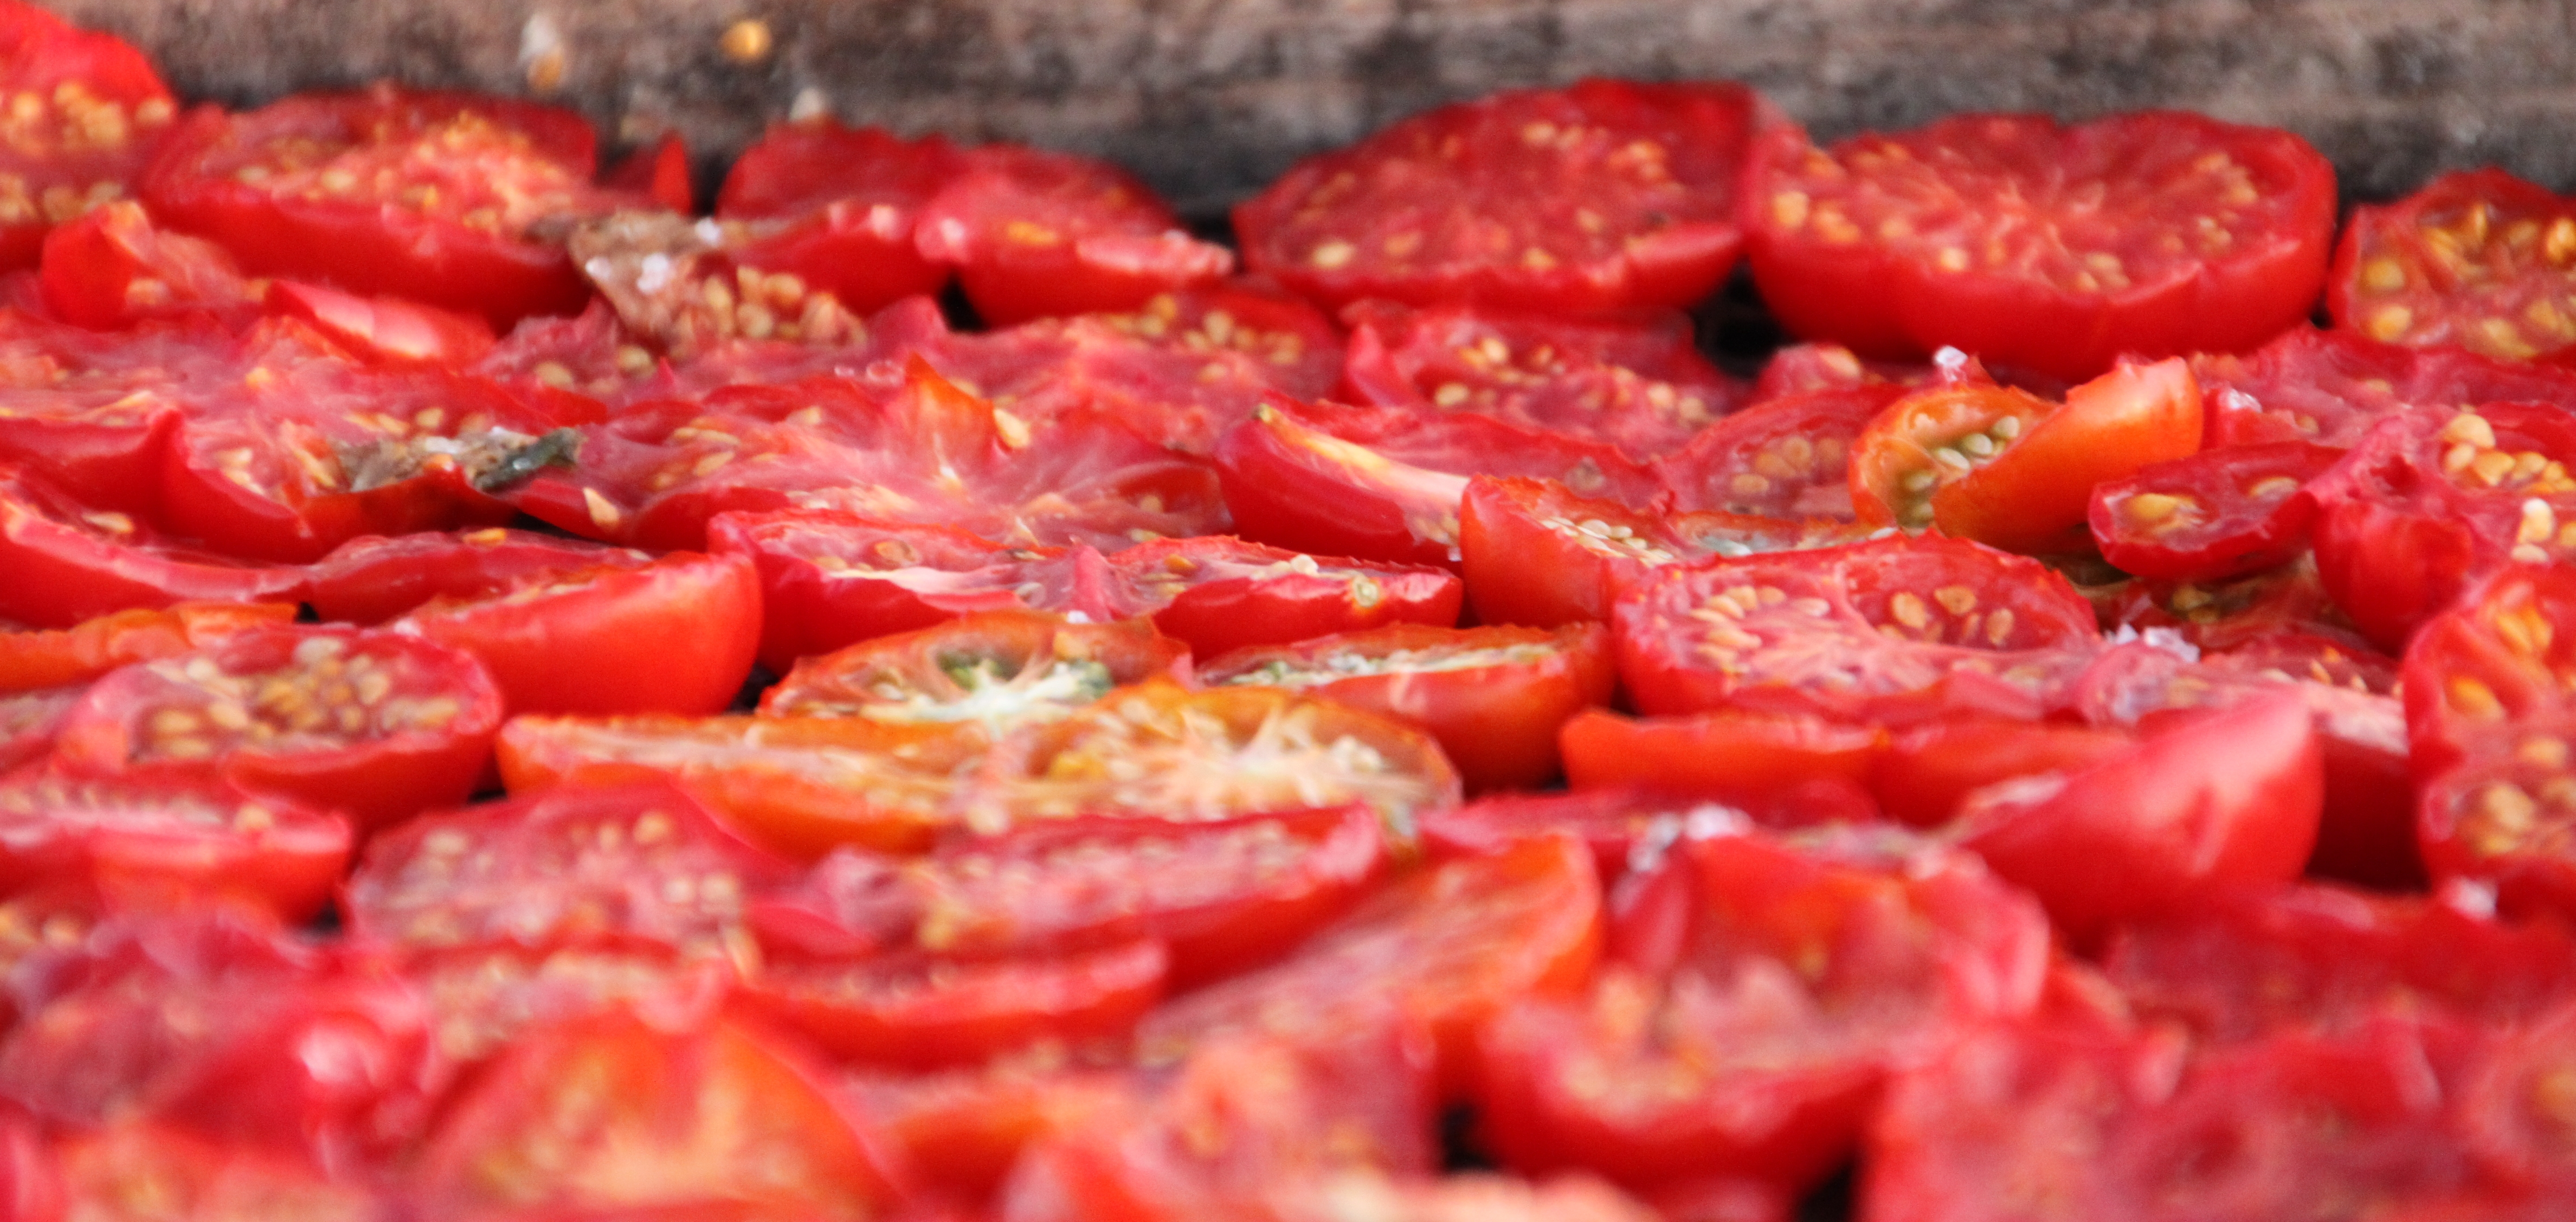 oven dried tomatoes - Mira Dessy, grains&more